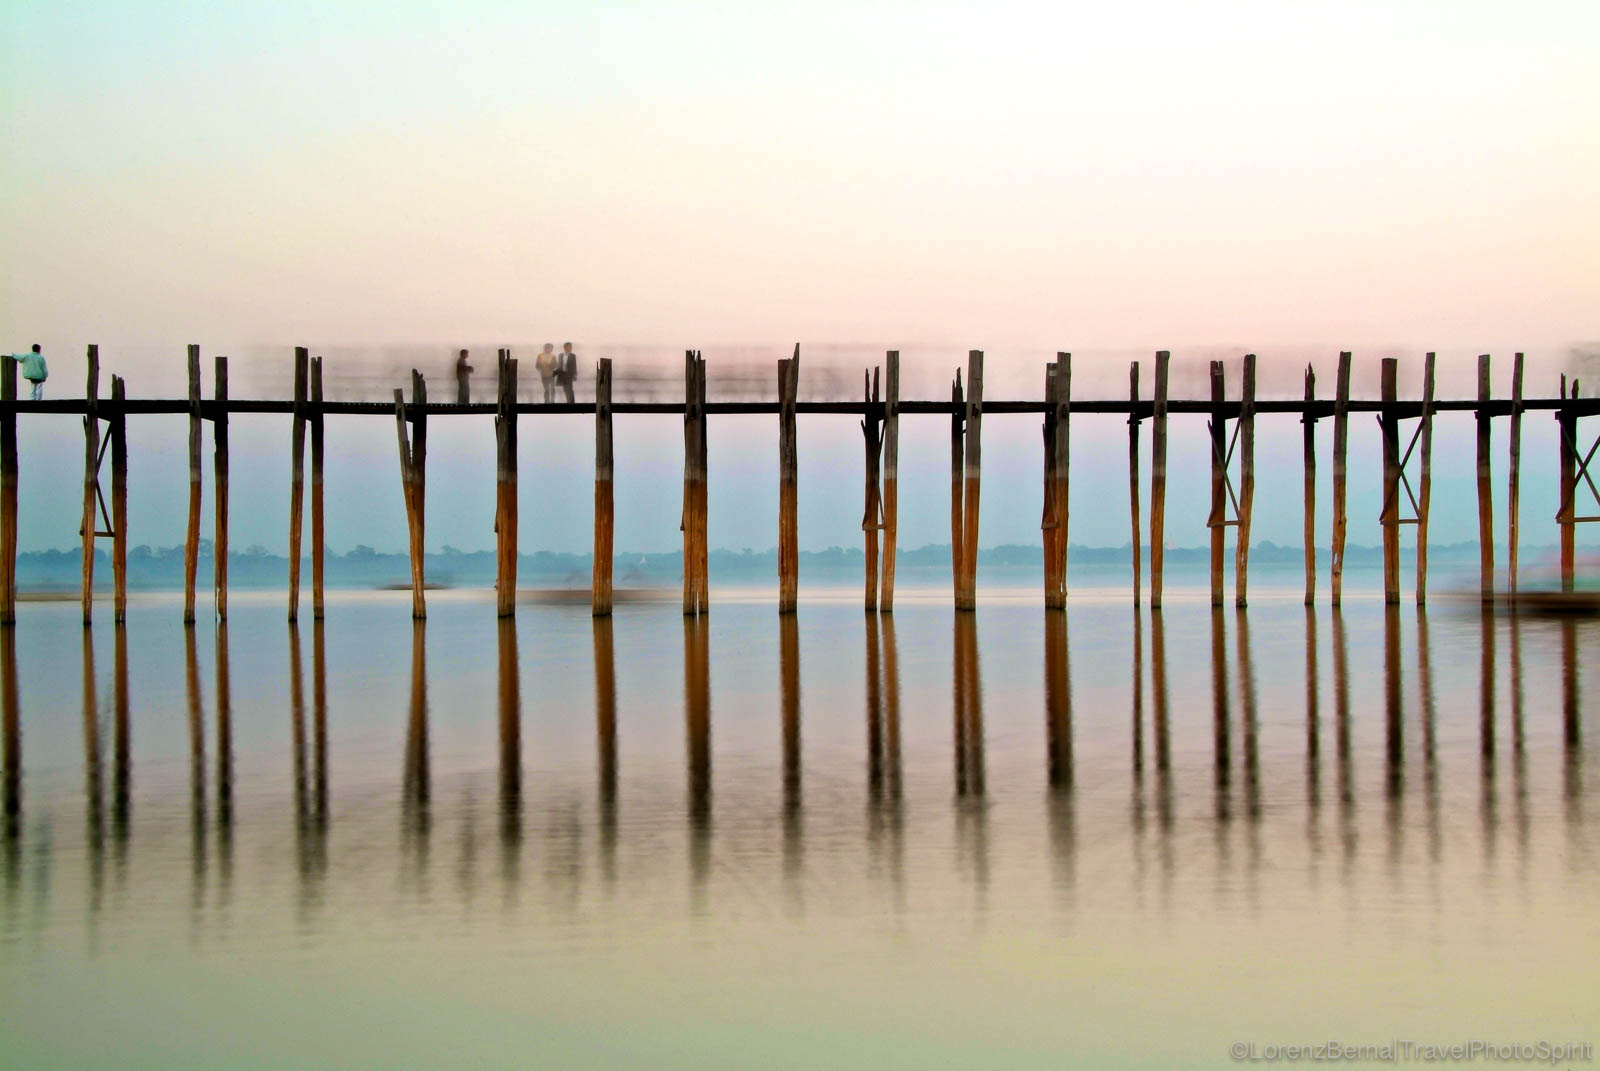 The U Bein Bridge near Mandalay - A Lorenz Berna Photography of Myanmar